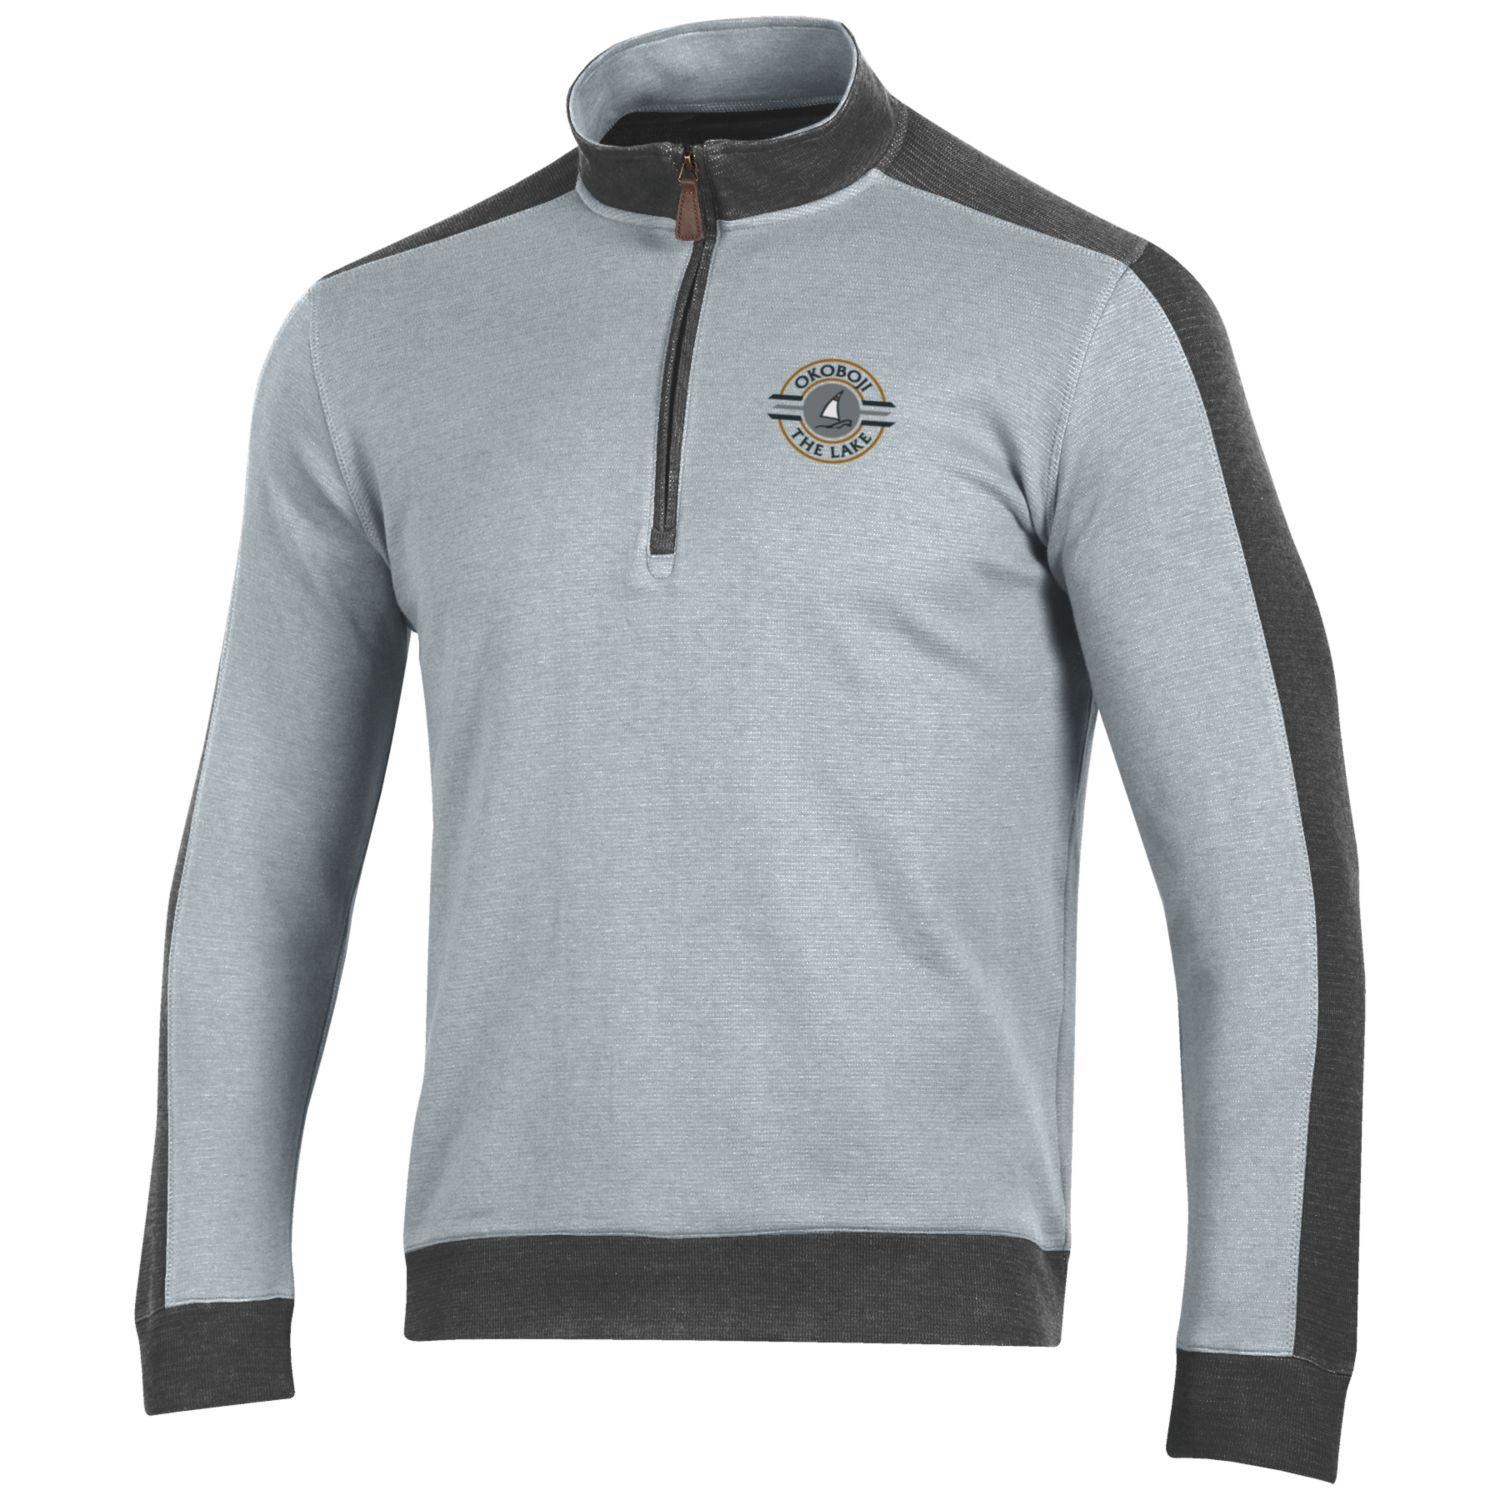 Okoboji Commander 1/4 Zip - Charcoal/Oxford Heather